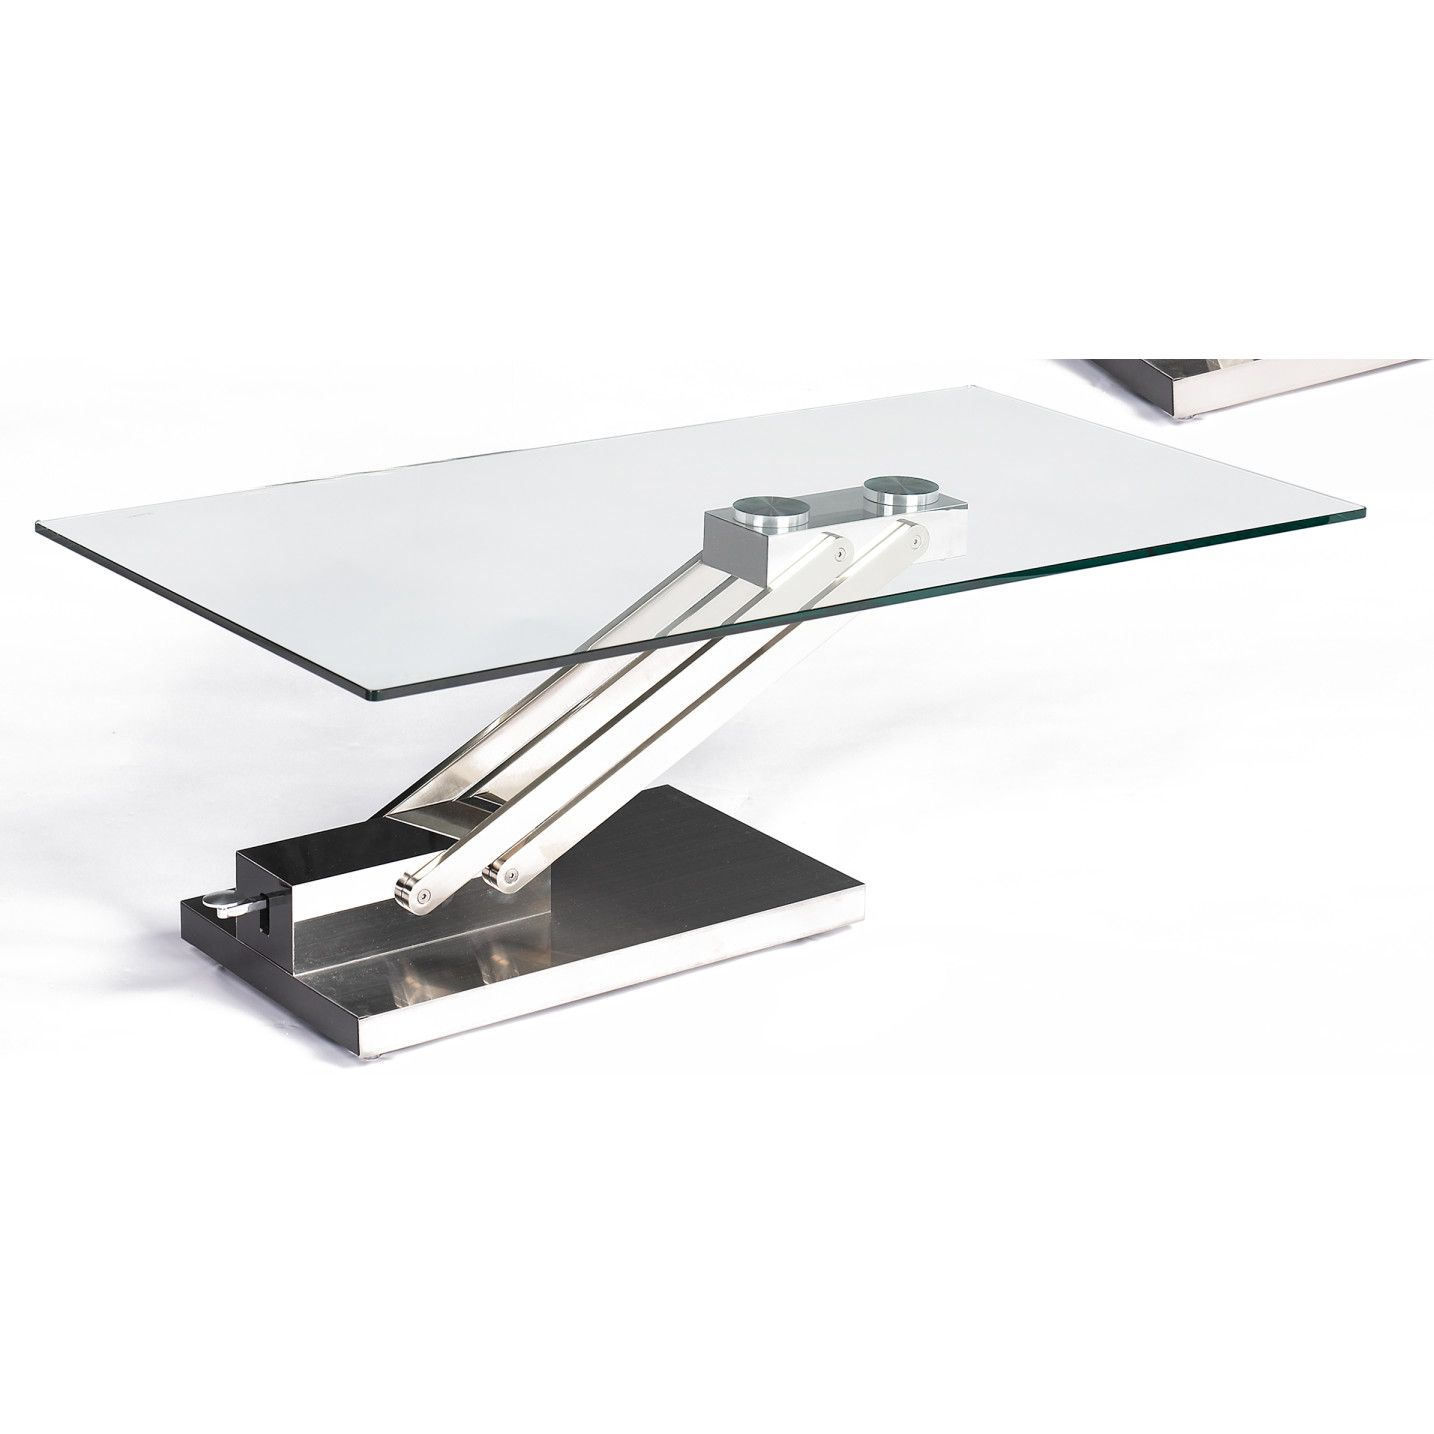 Adjustable height coffee tables can replace coffee tables dining adjustable height coffee tables can replace coffee tables dining tables buffet tables geotapseo Choice Image